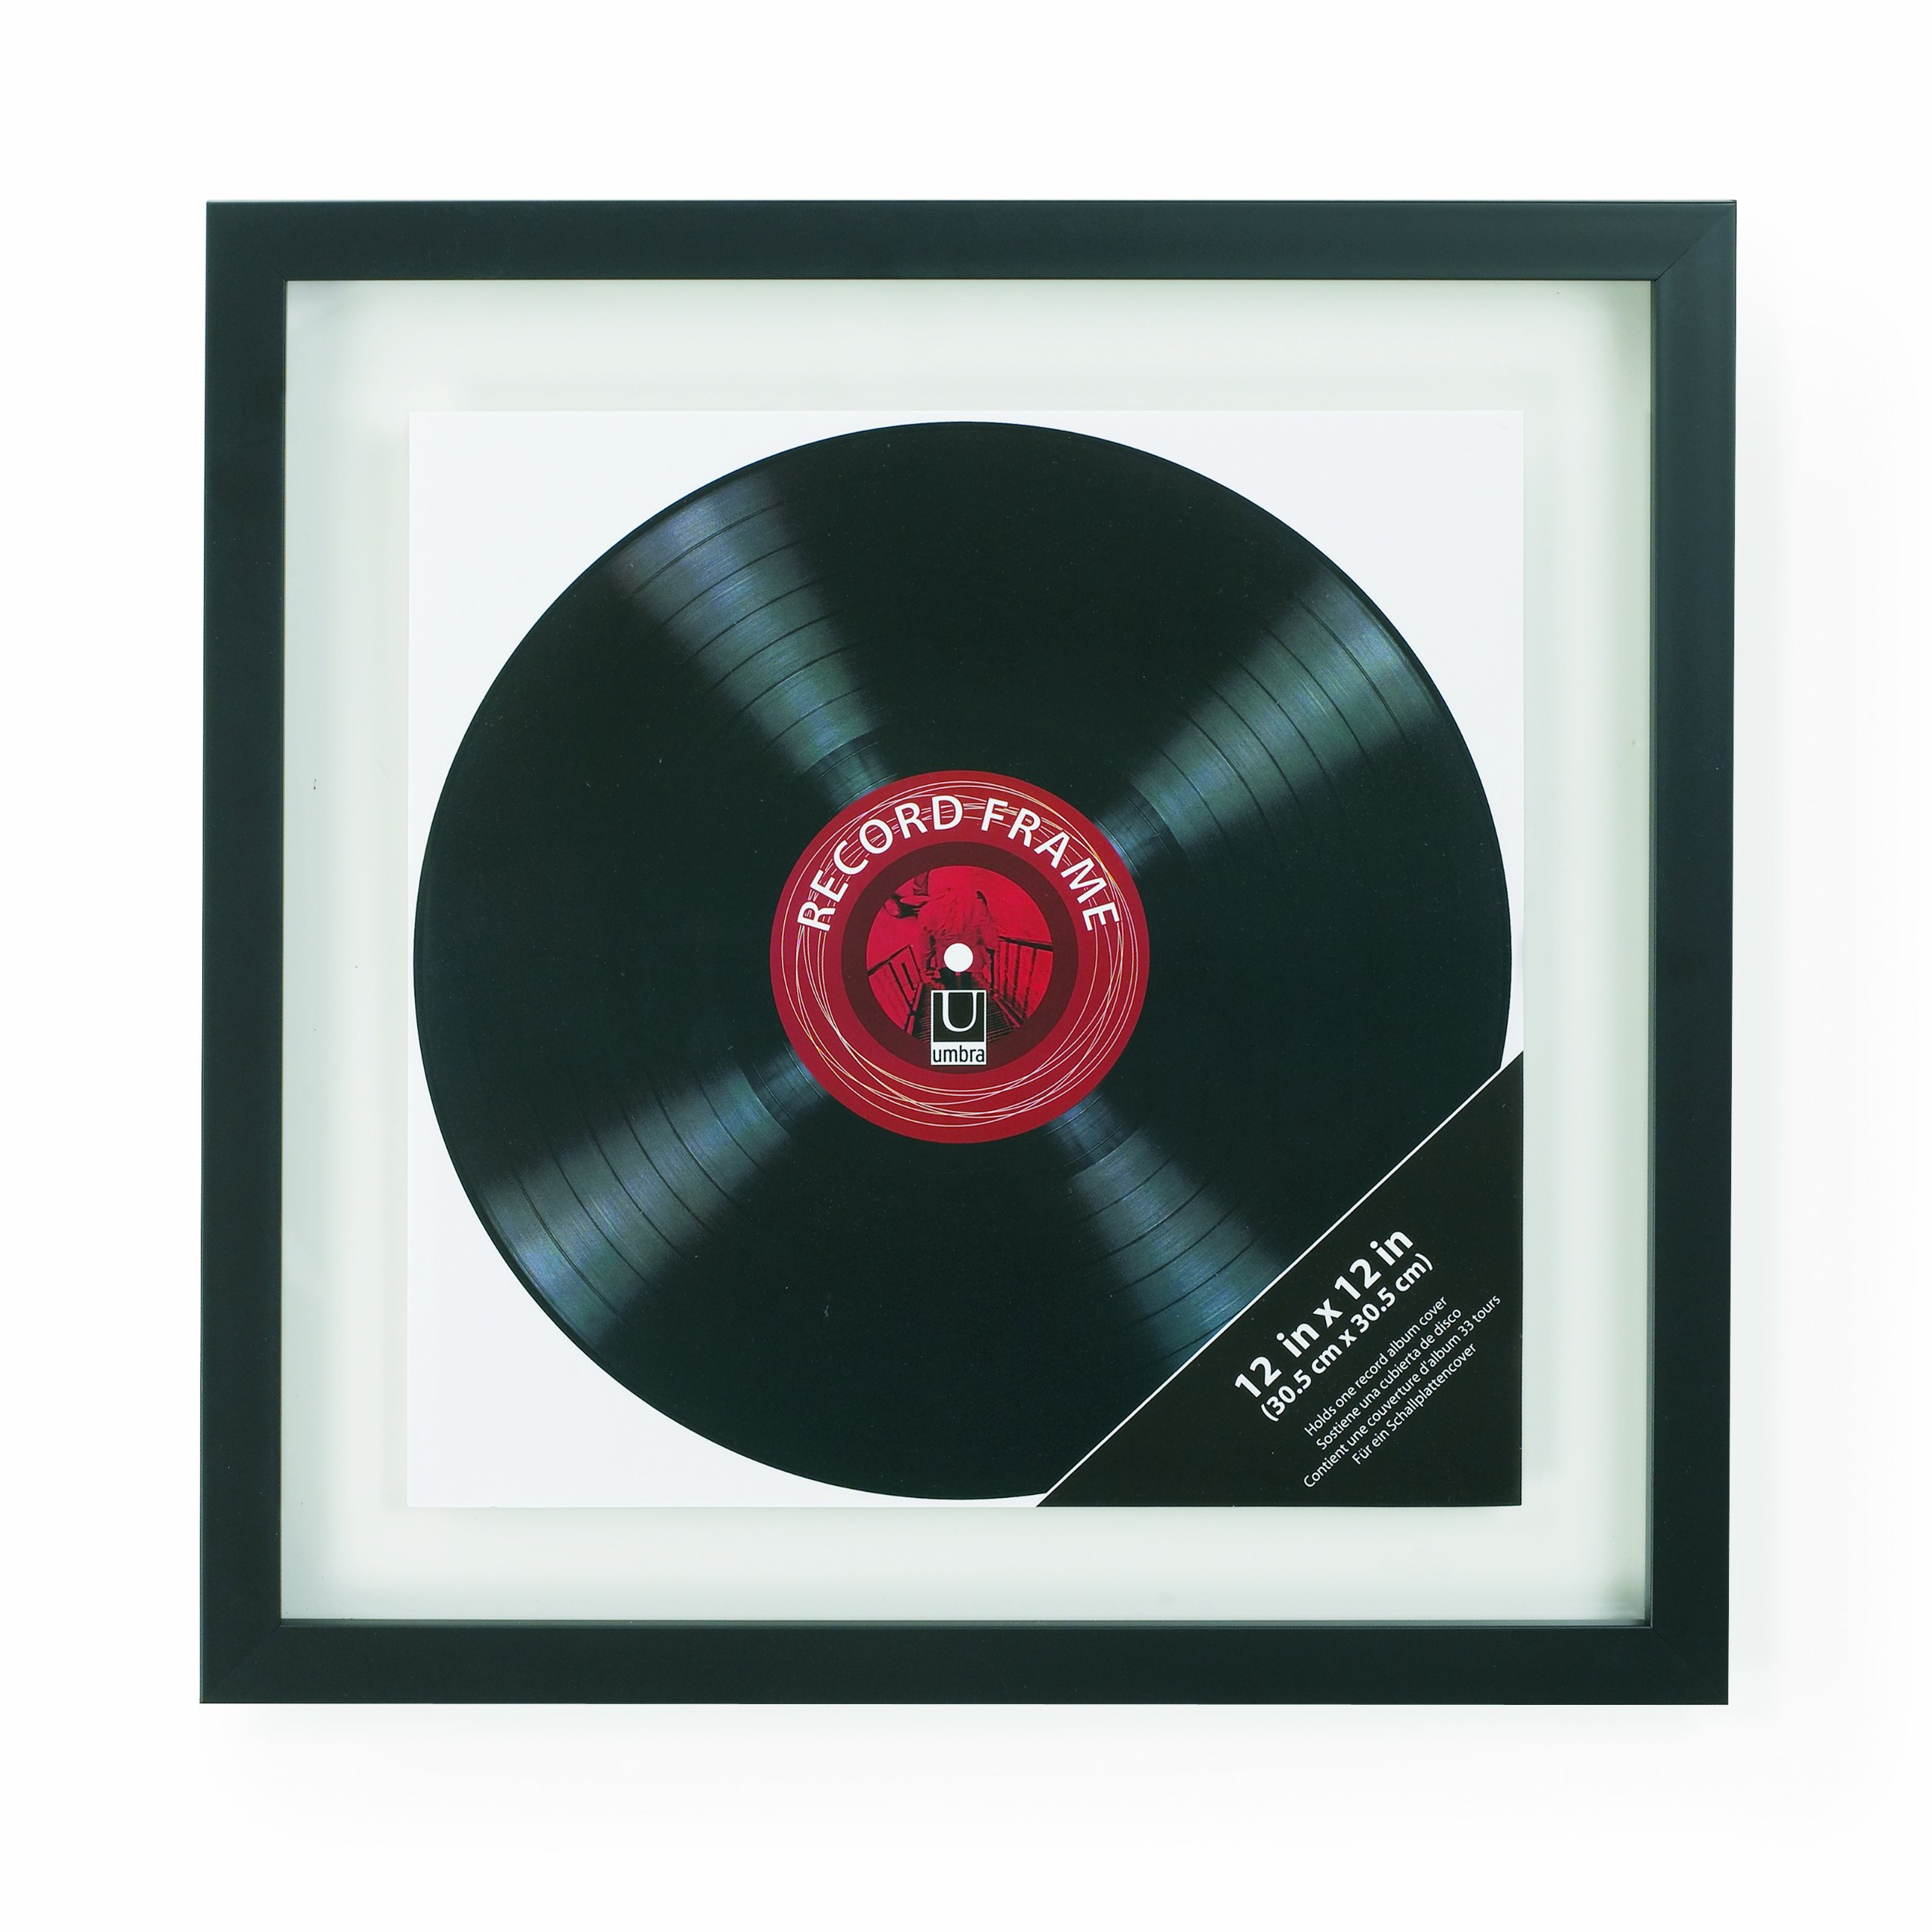 Umbra Record Album Frame 14-1/2x14-1/2-Inch, Modern Picture Frame Designed to Display a Floating 12-Inch by 12-Inch Album Cover